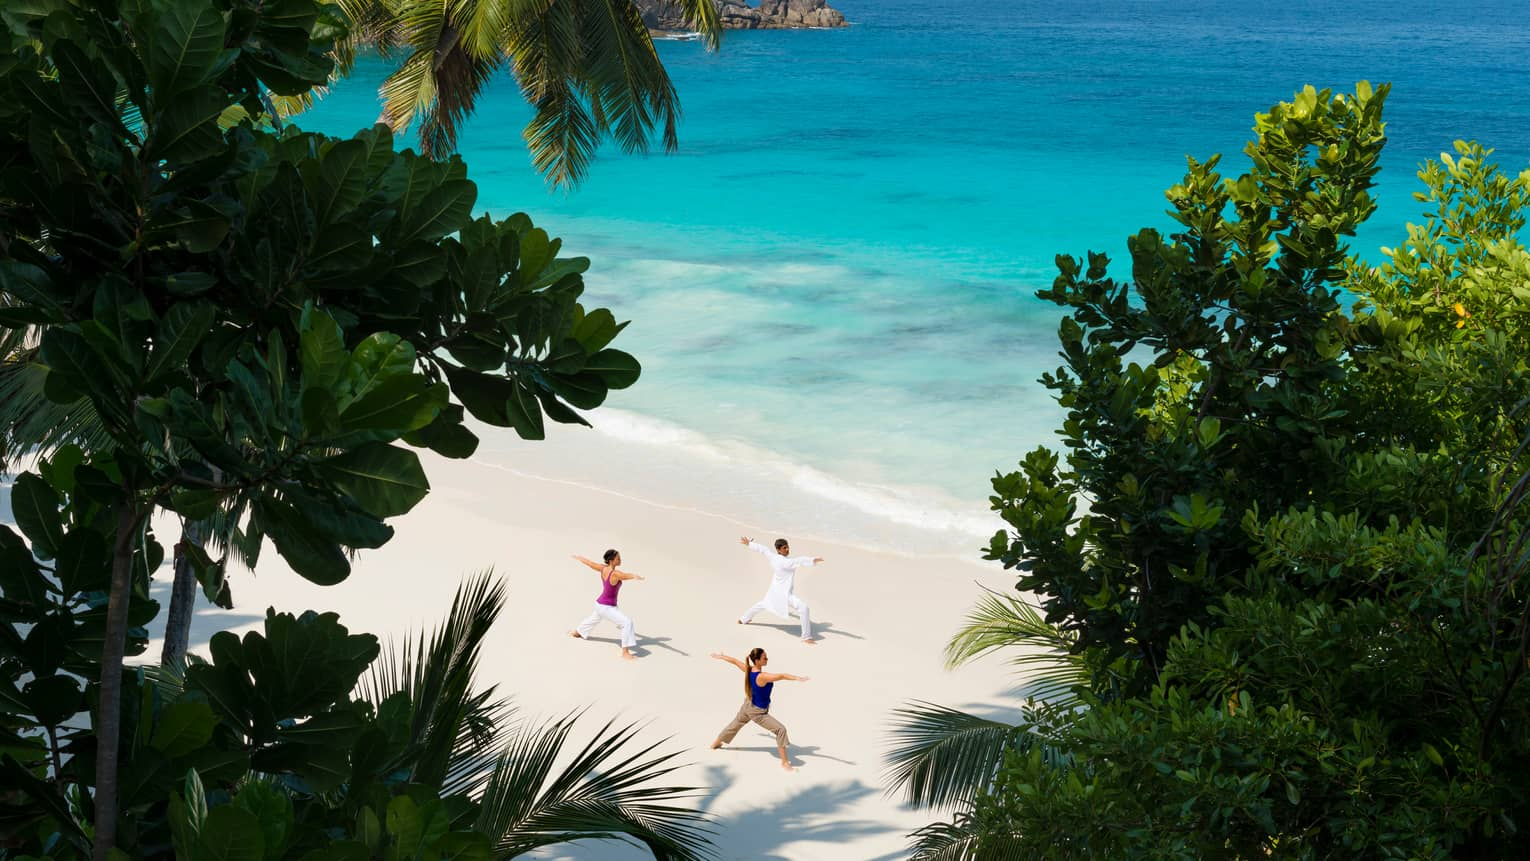 Aerial view of sandy beach through palm leaves where three people do yoga